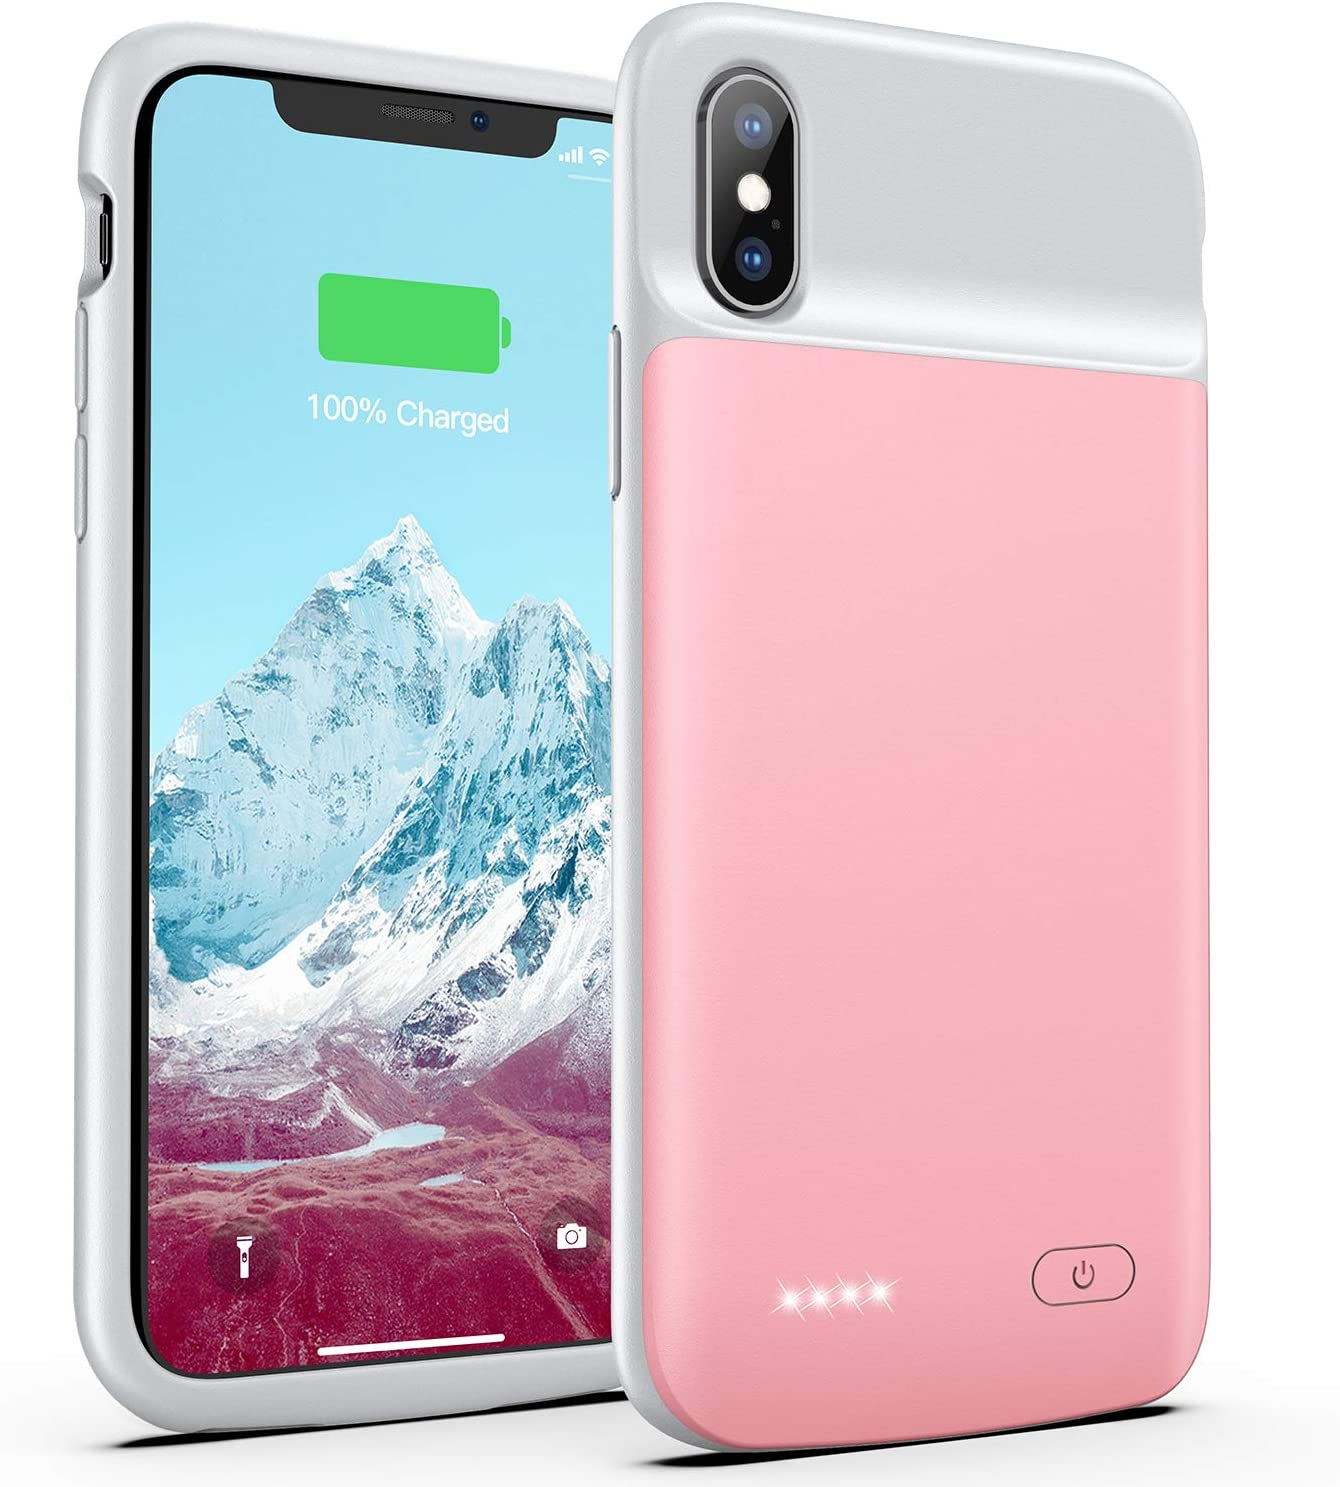 External Charger Case 6.5 inch Rose Gold Battery Charger Case for iPhone Xs Max 6000mAh Rechargeable AEDLYK Portable Ultra-Slim Protective Charging Case Compatible with iPhone Xs Max